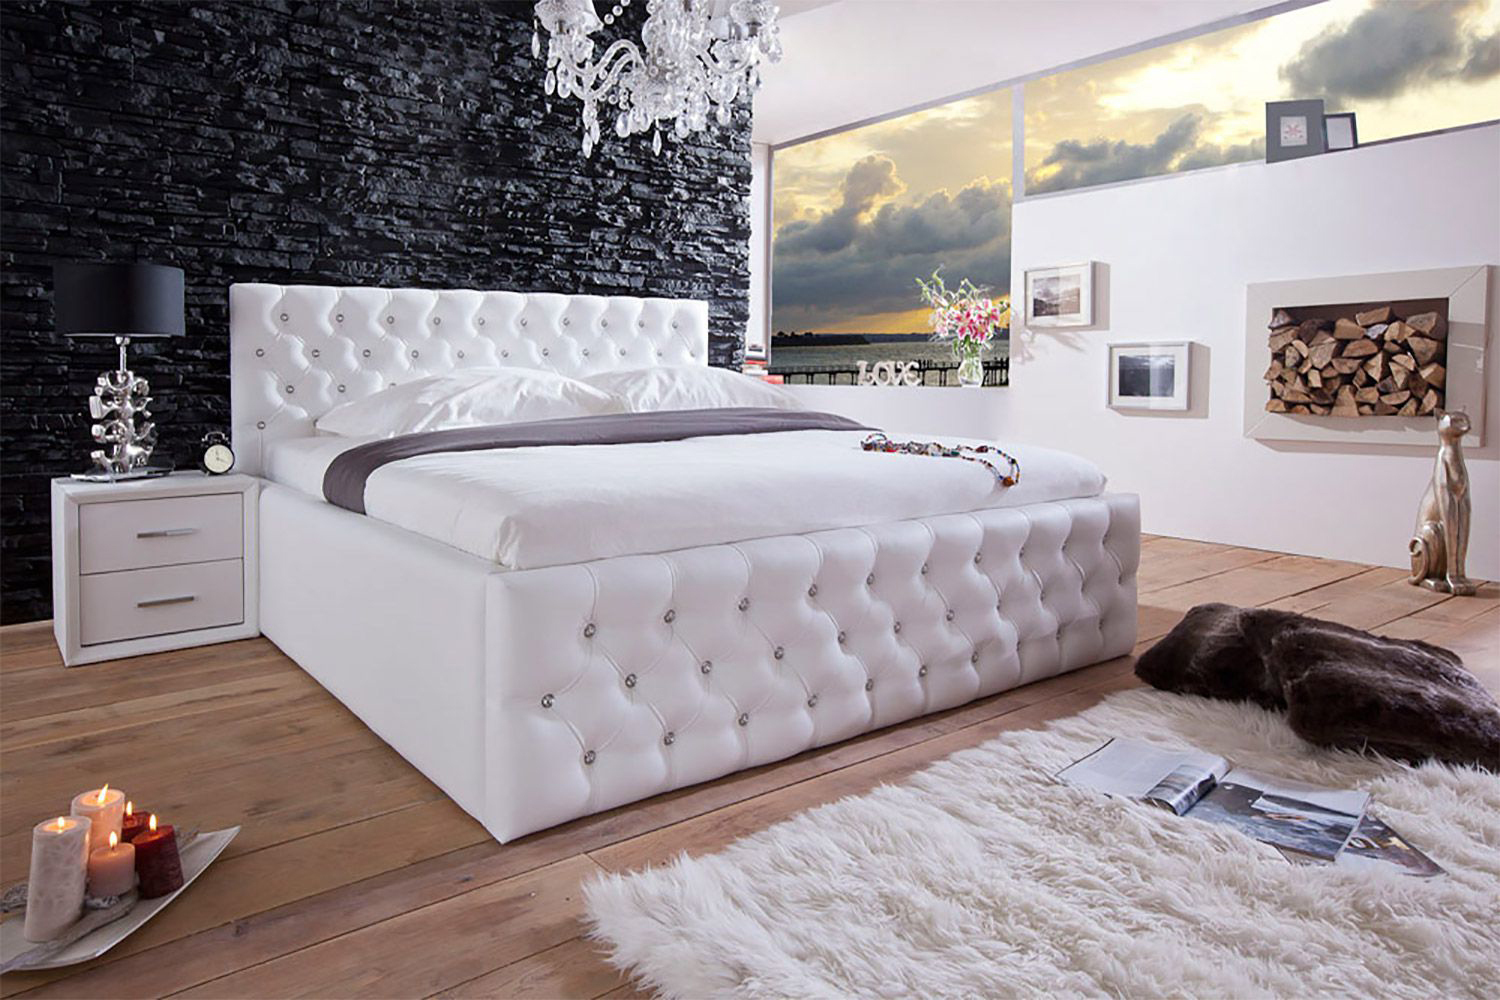 di lara polsterbett dubai mit bettkasten 140x200 160x200 180x200 200x200 ebay. Black Bedroom Furniture Sets. Home Design Ideas